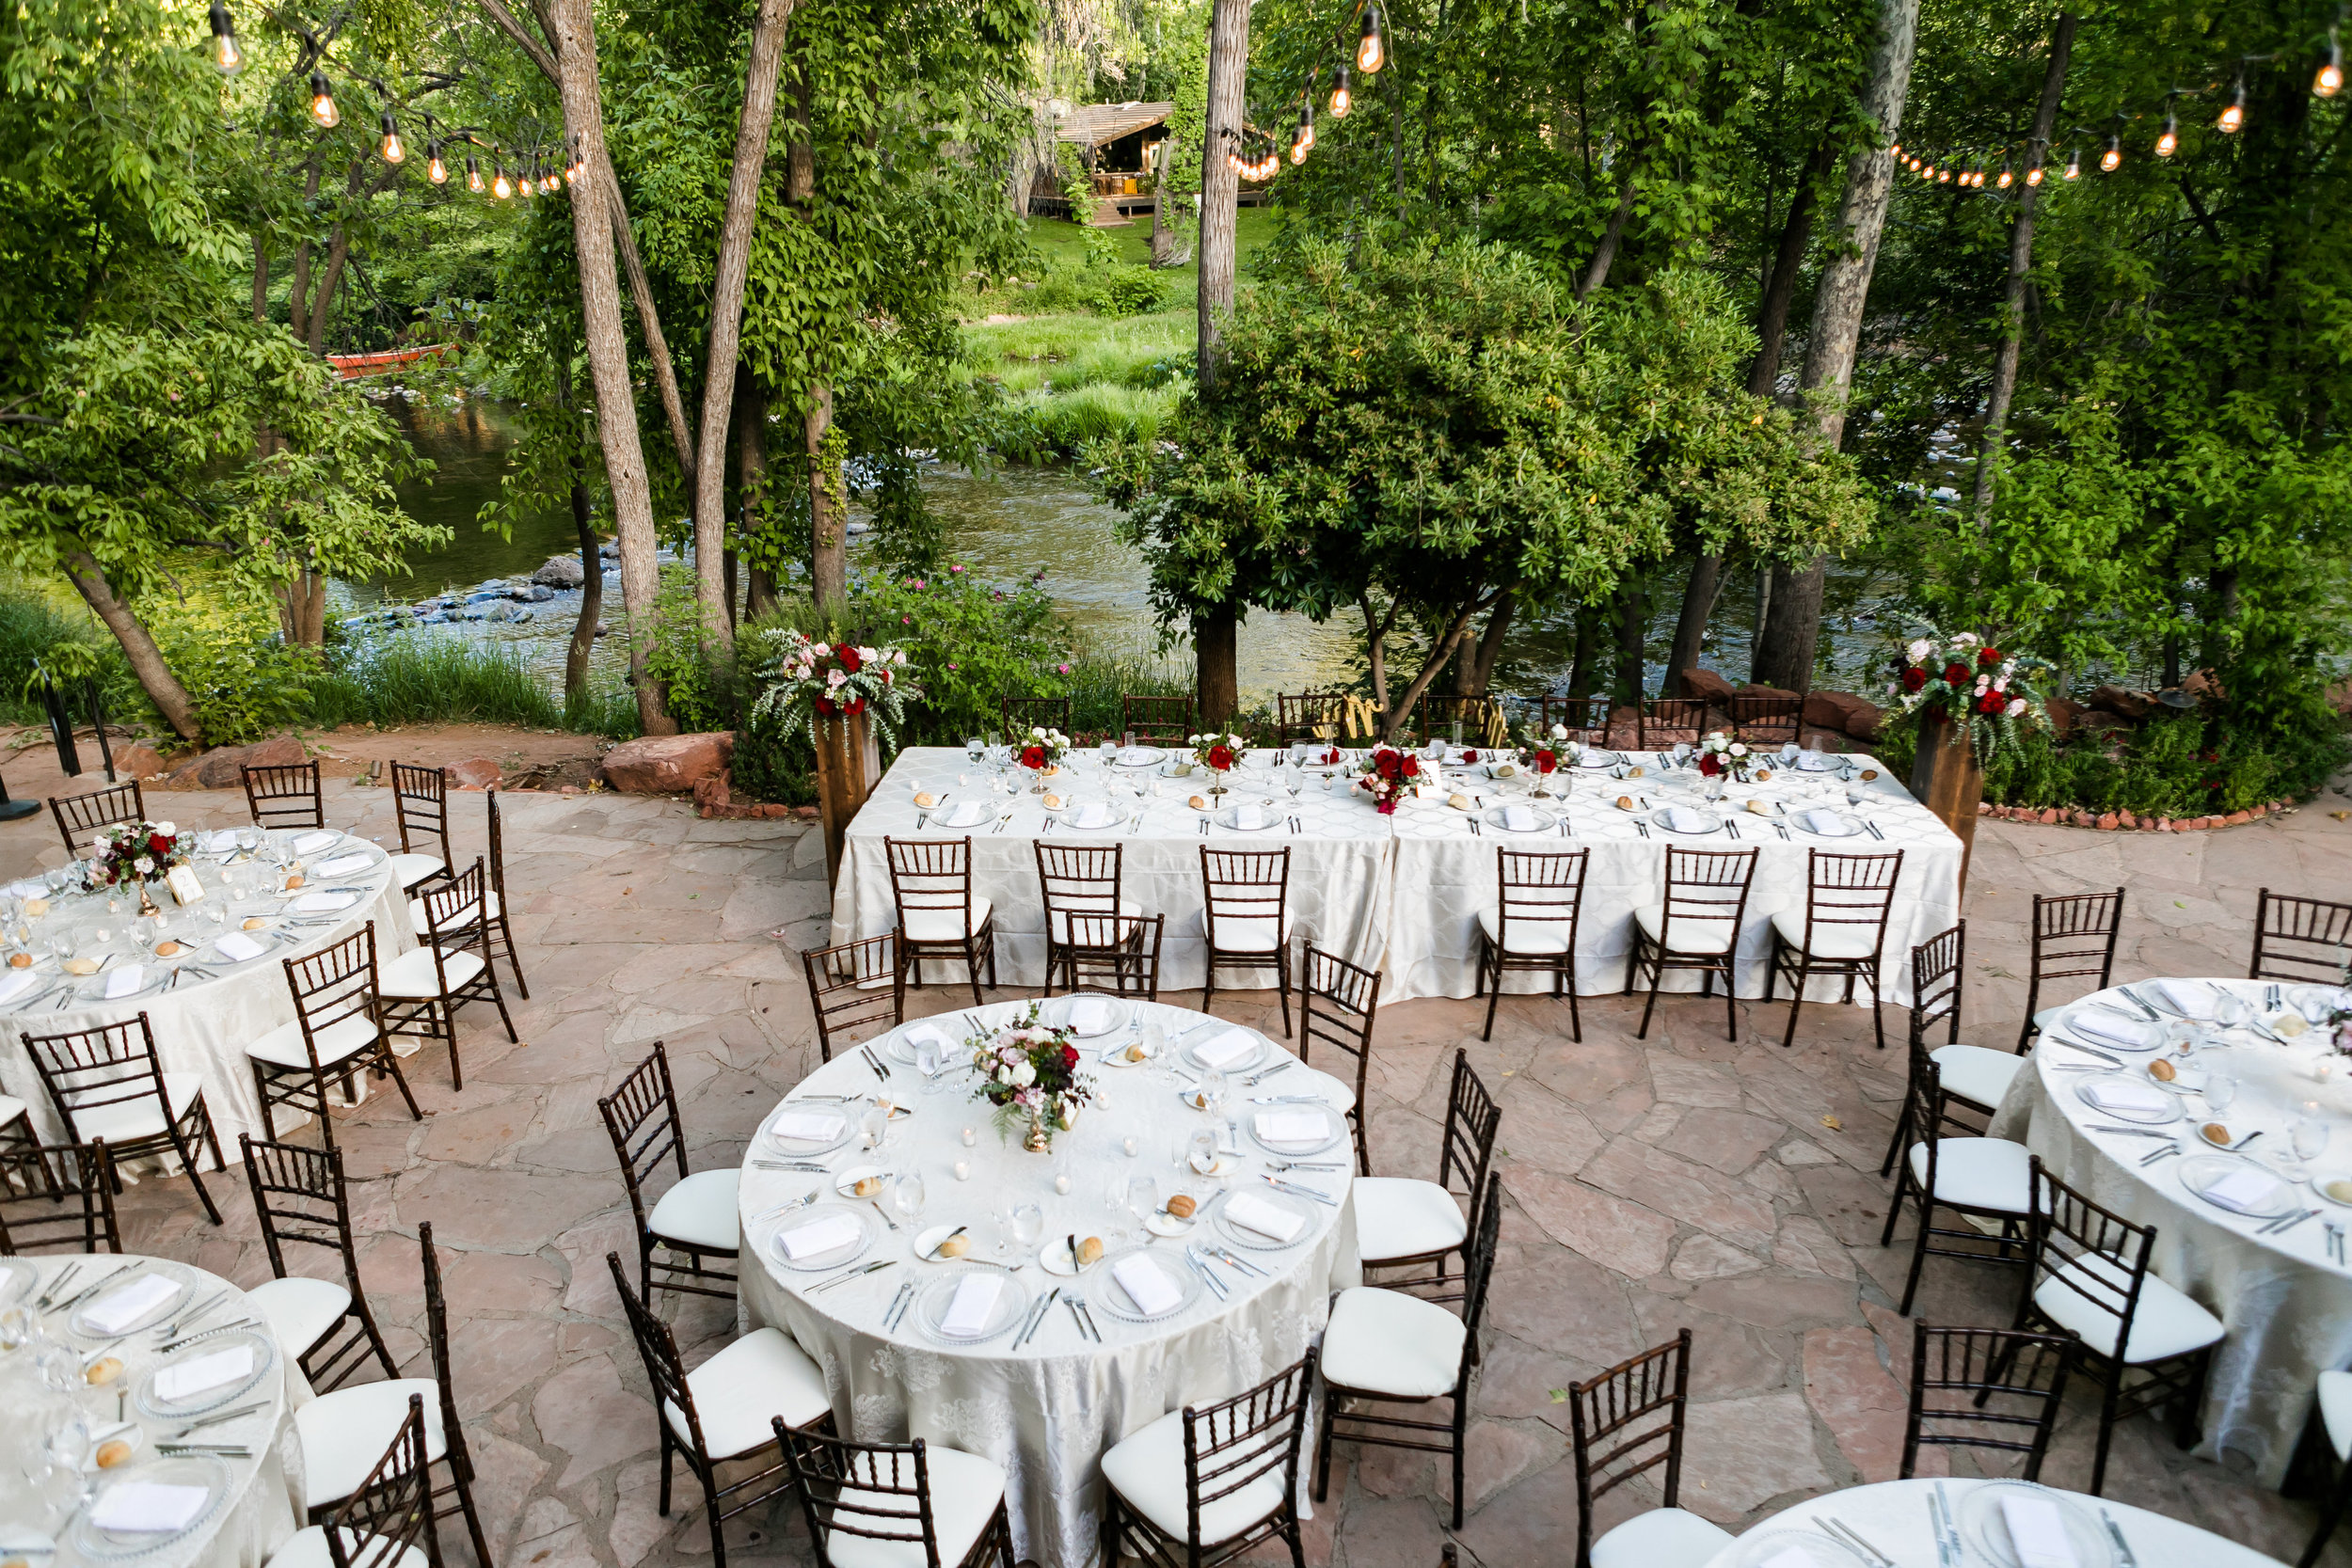 Burgundy and Blush Wedding at L'Auberge de Sedona - Wedding Reception with Round and Rectangular Tables